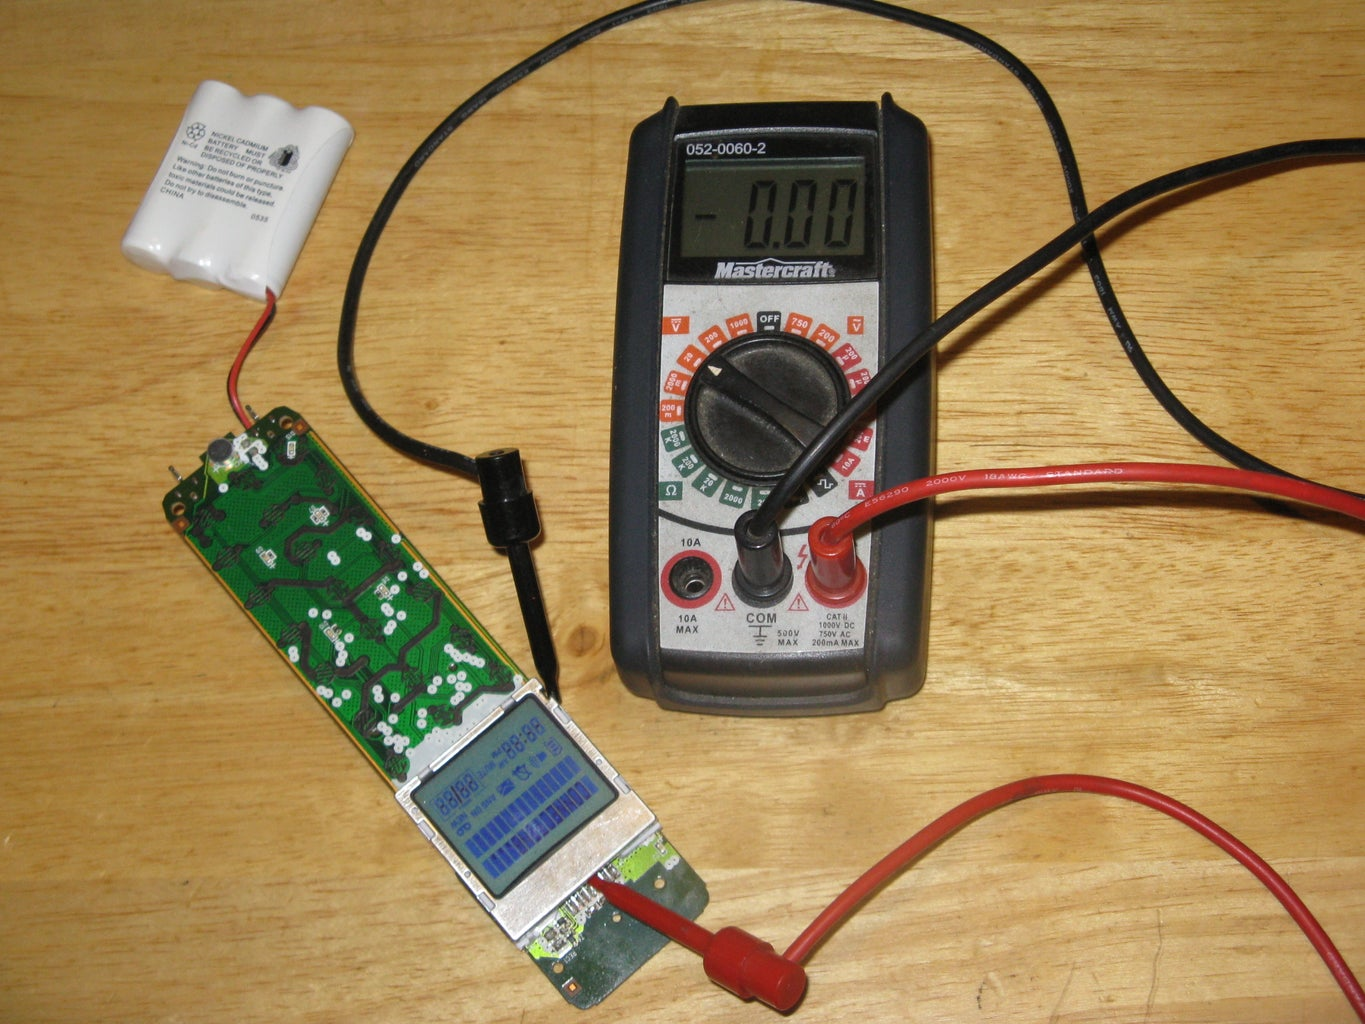 Live Testing With a Meter